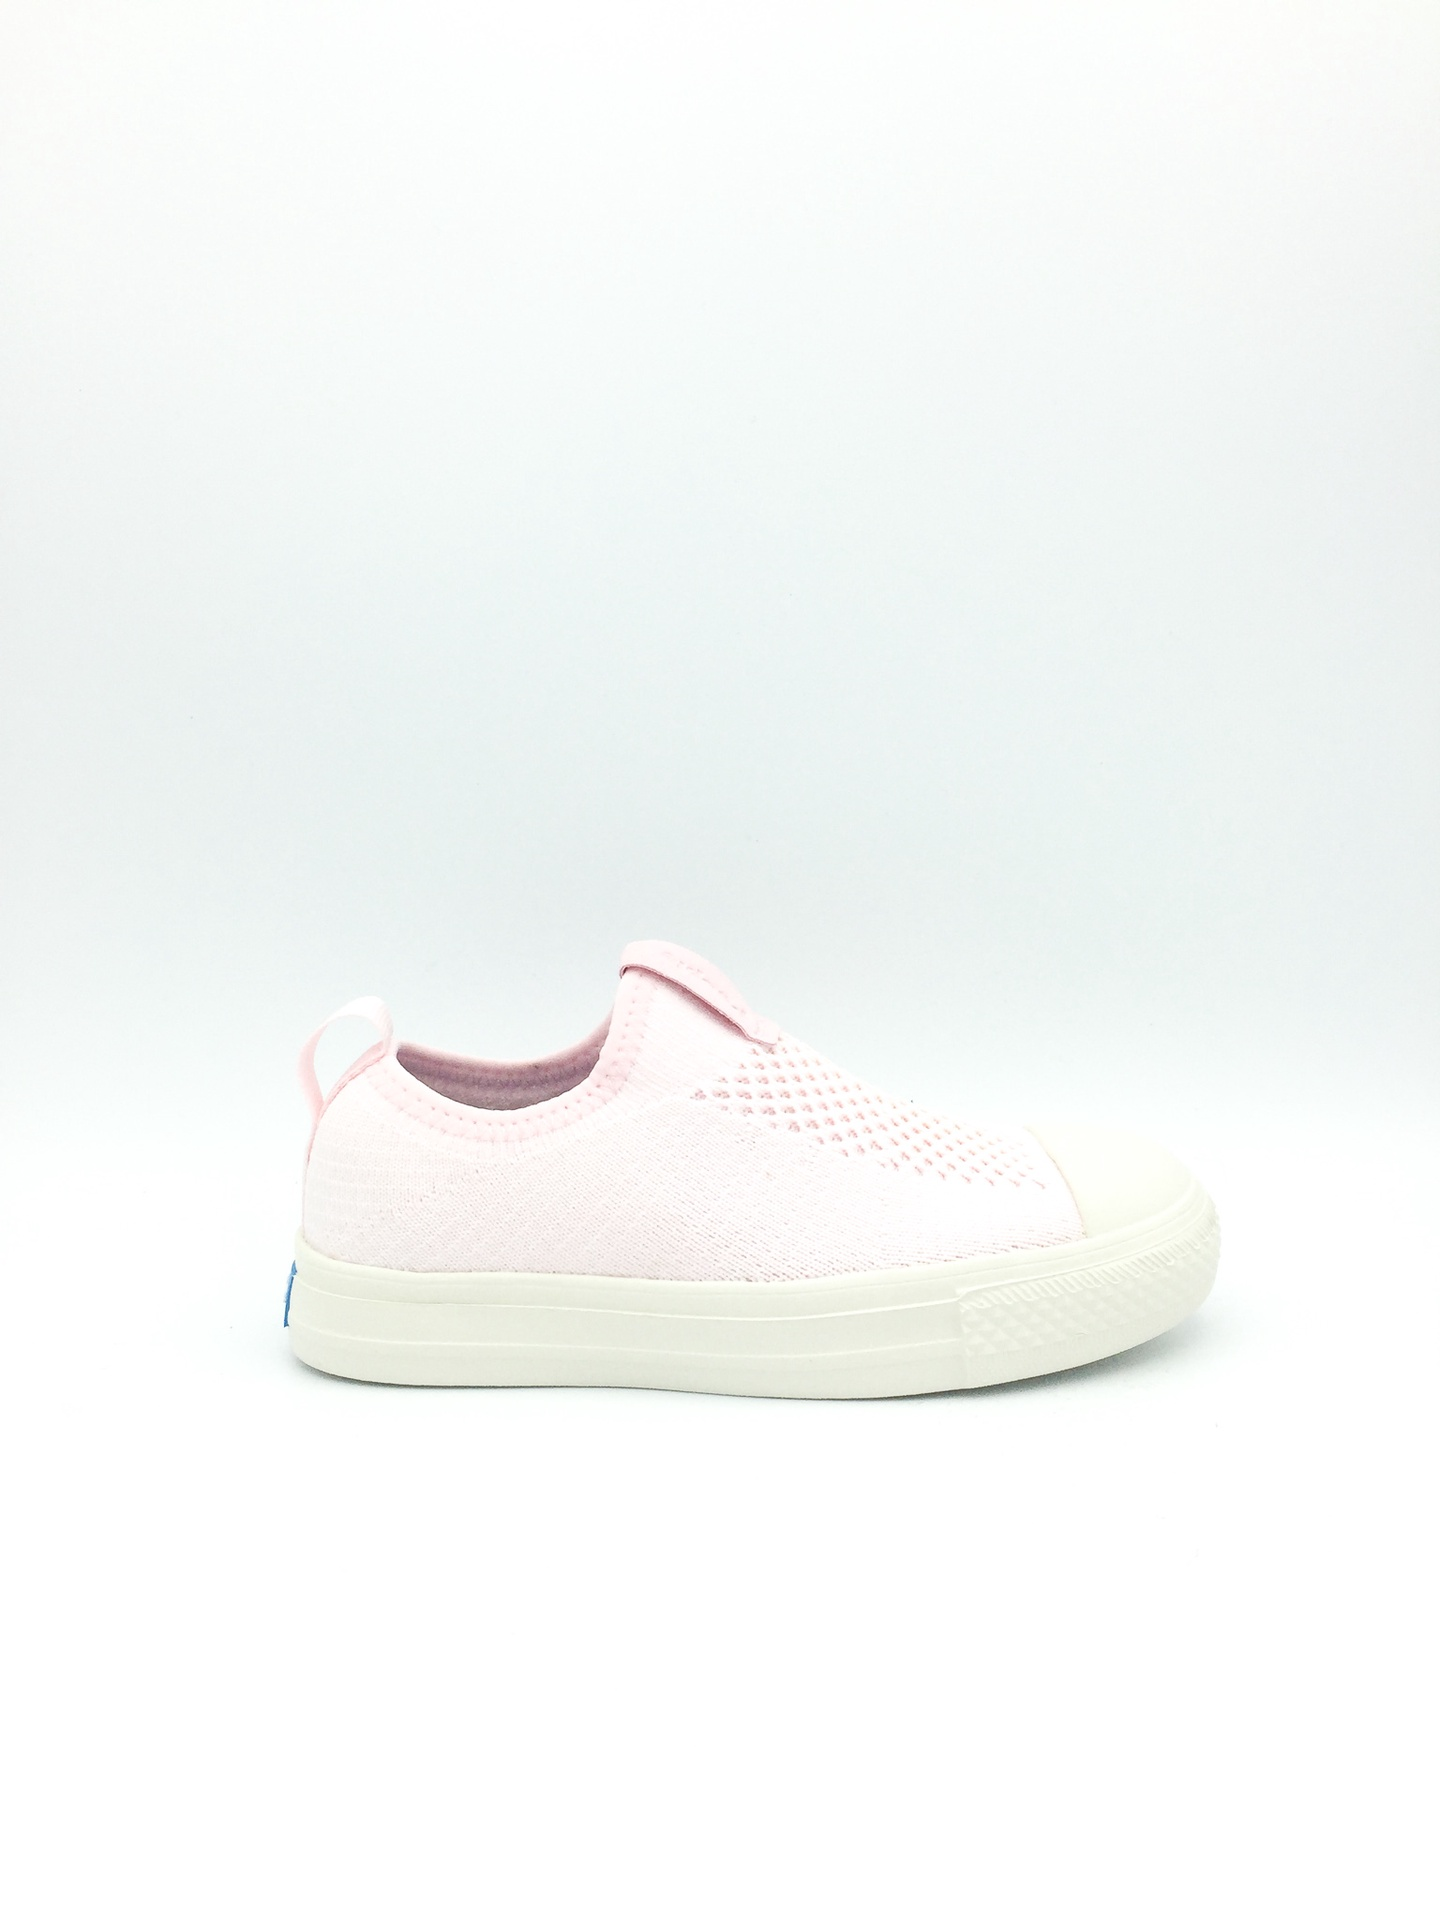 PEOPLE FOOTWEAR - THE PHILLIPS JUNIOR KNIT IN CUTIE PINK/YETI WHITE